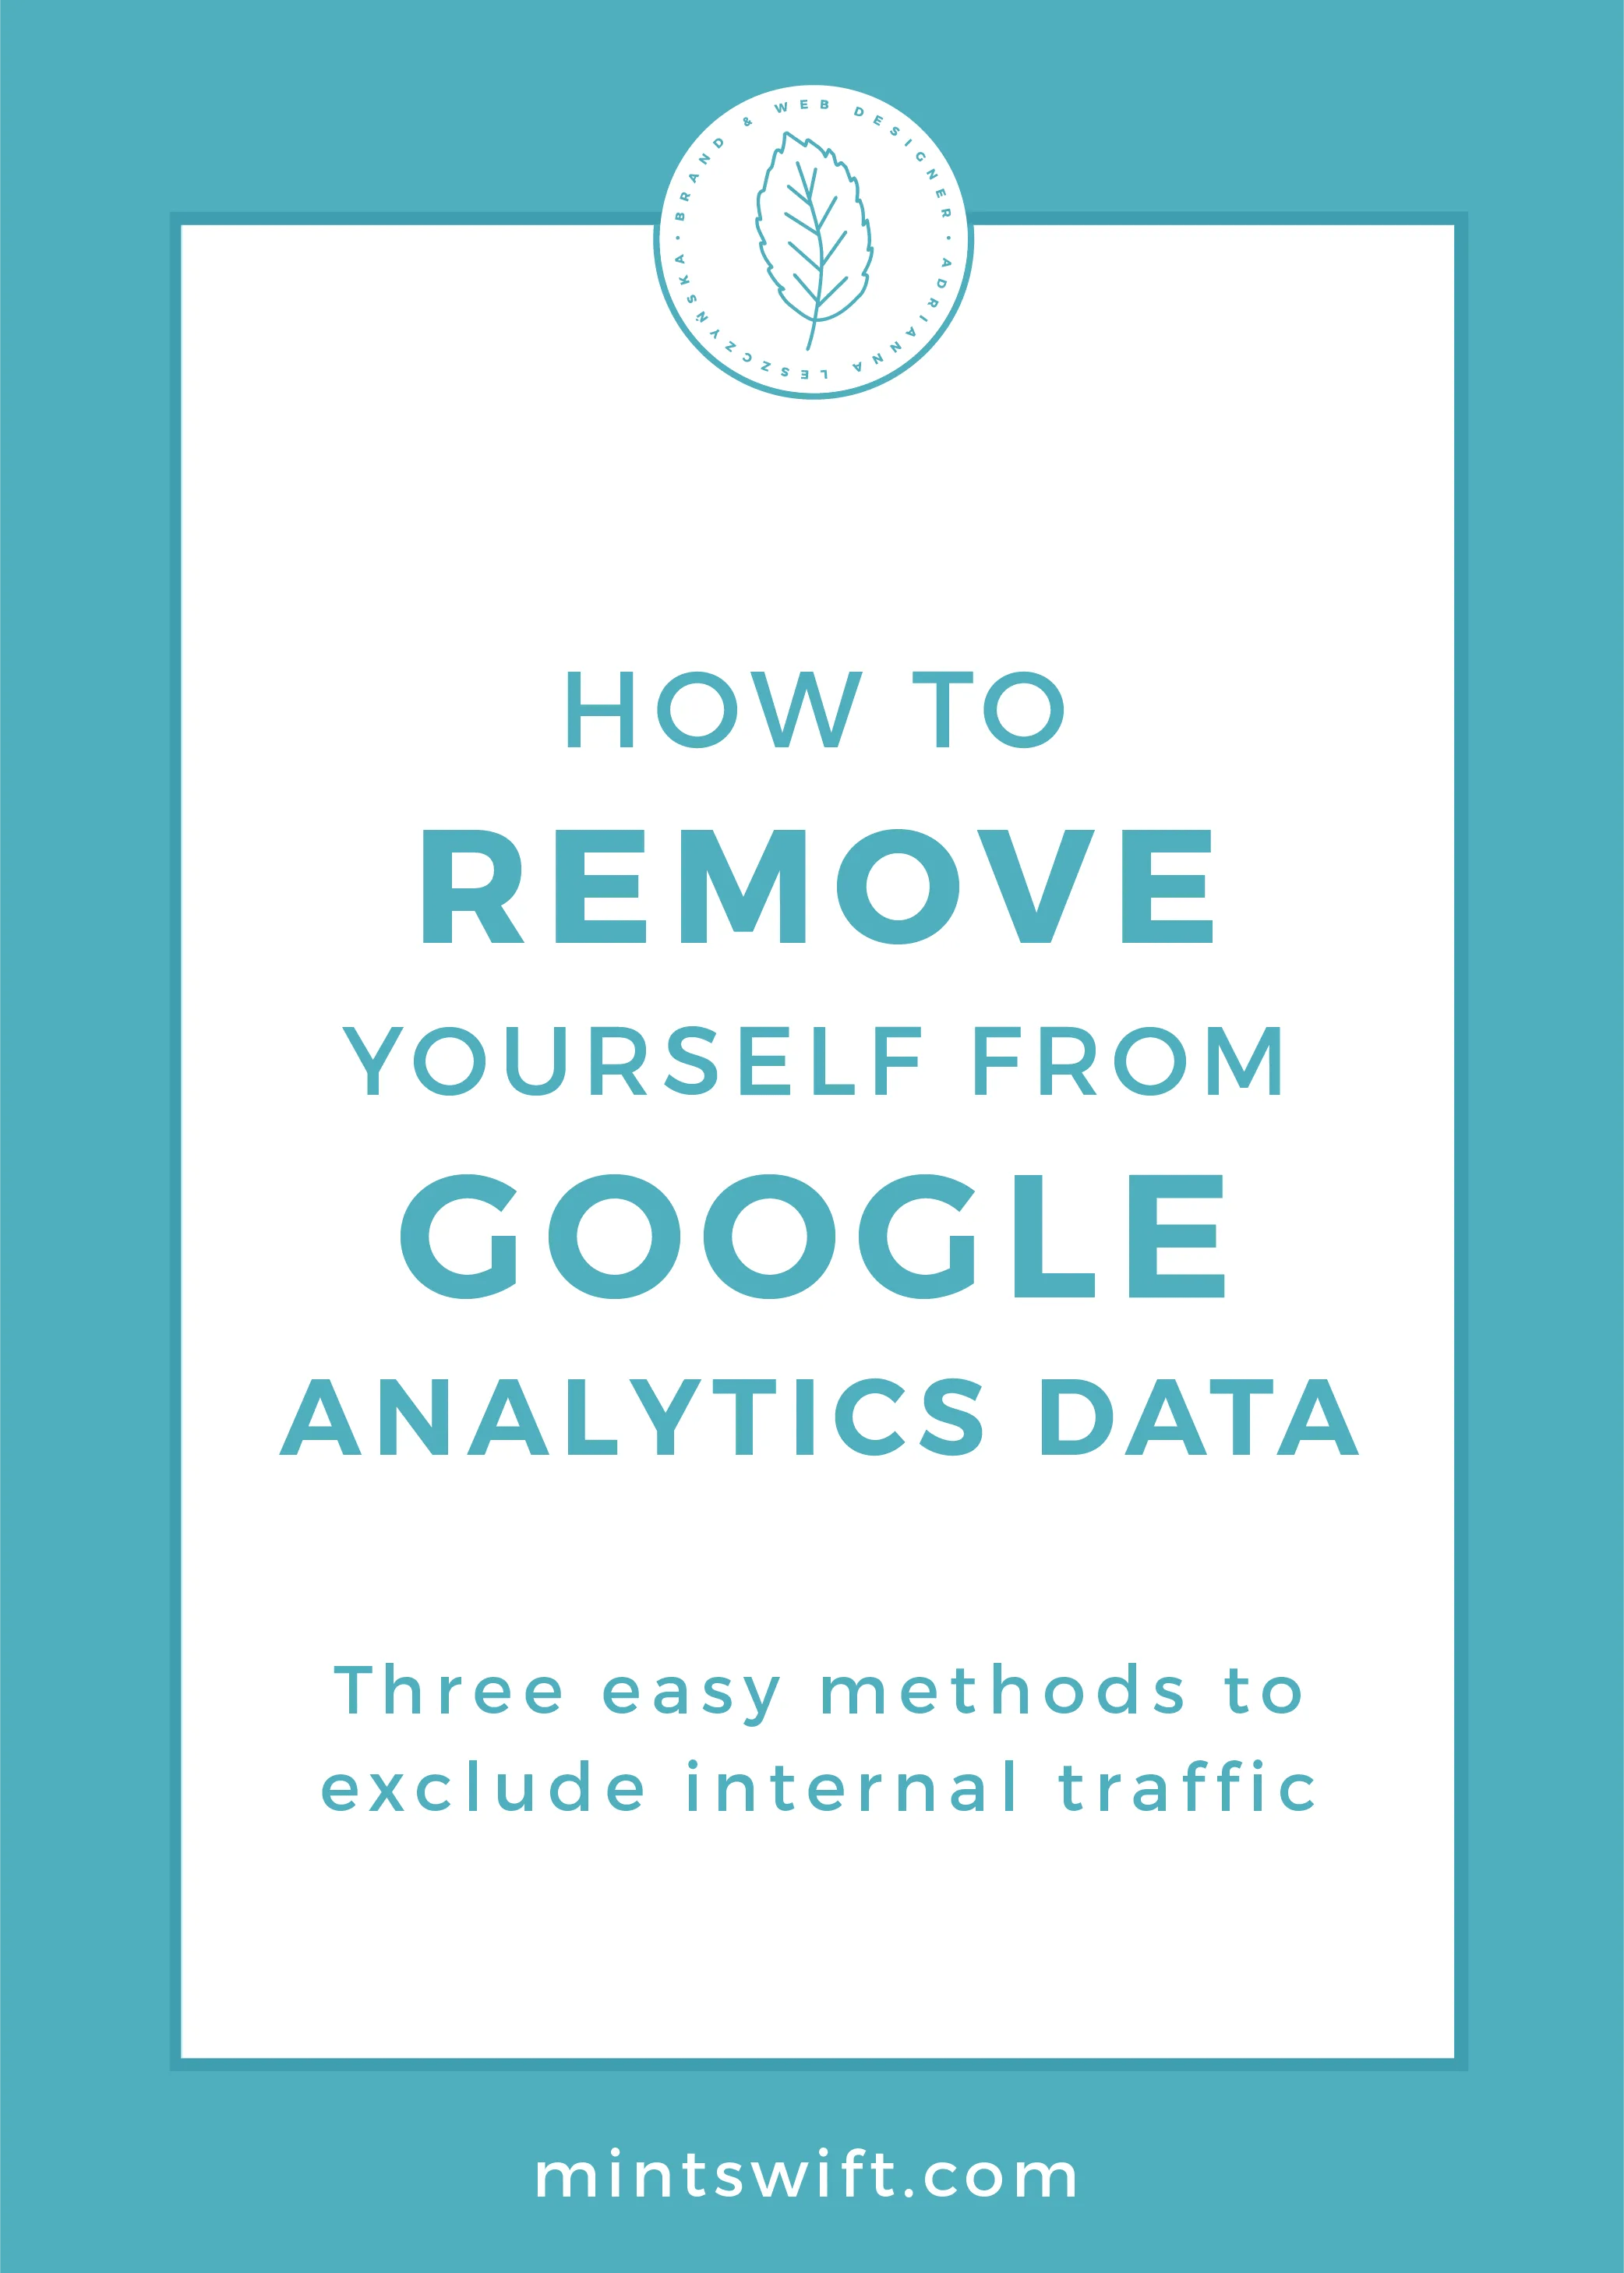 How to Remove Yourself from Google Analytics Data. Three Easy Methods to Exclude Internal Traffic by MintSwift